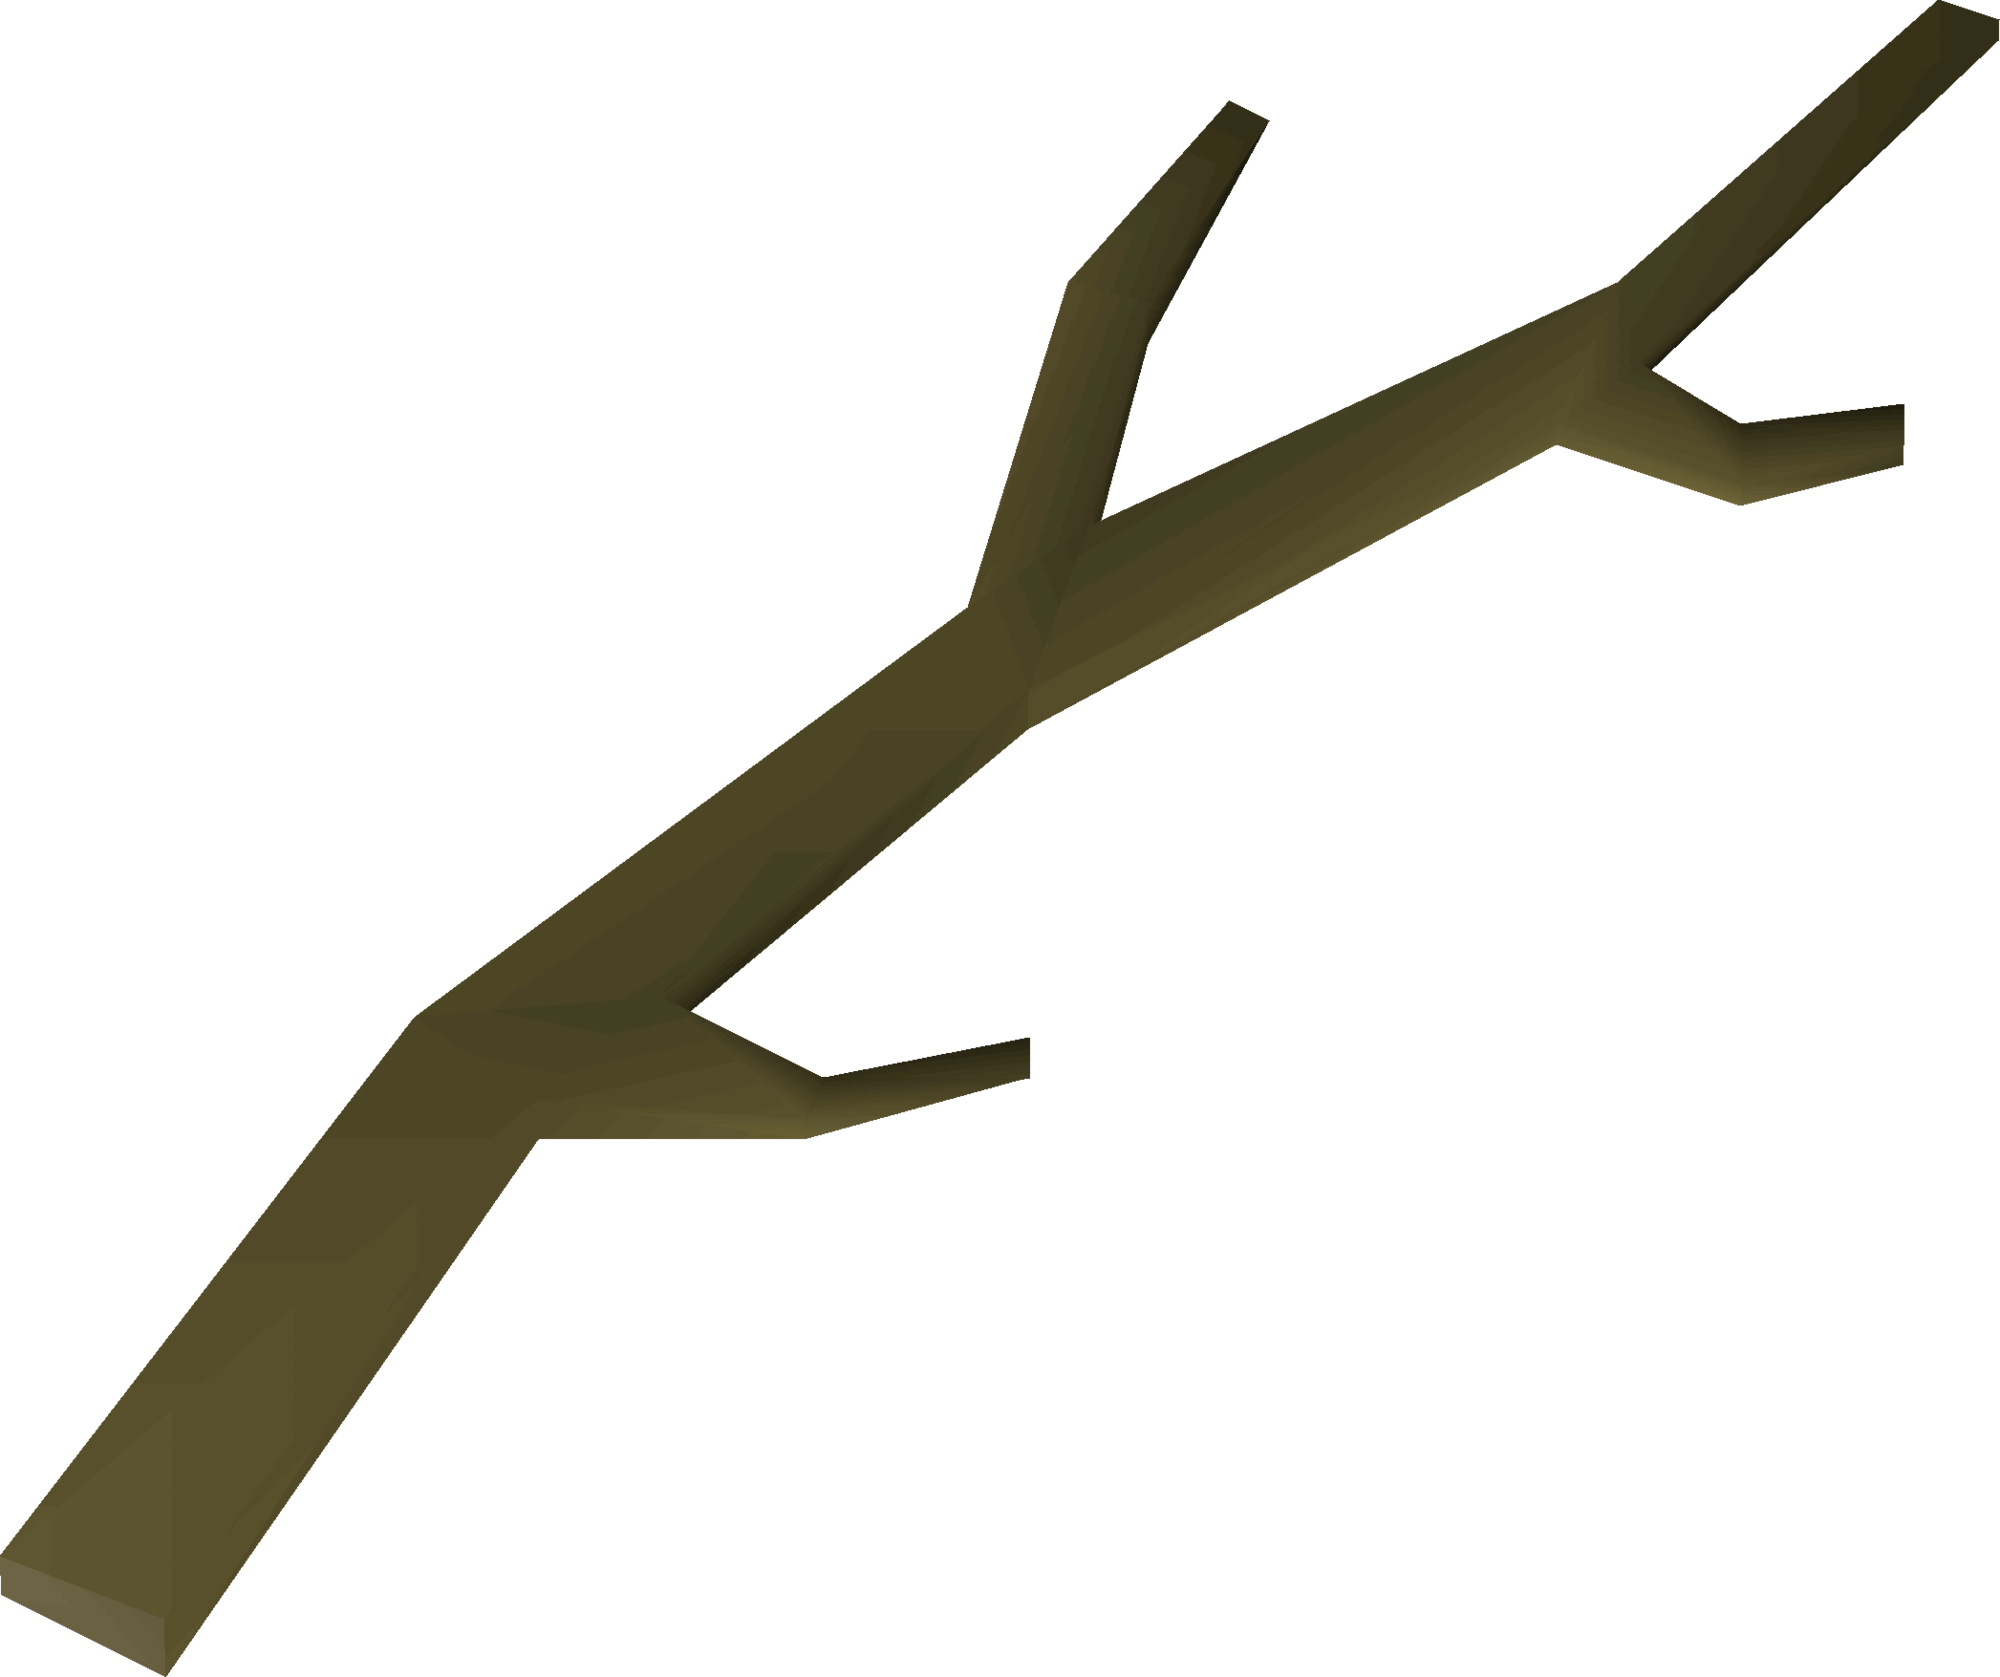 Twig stick png. Willow branch old school